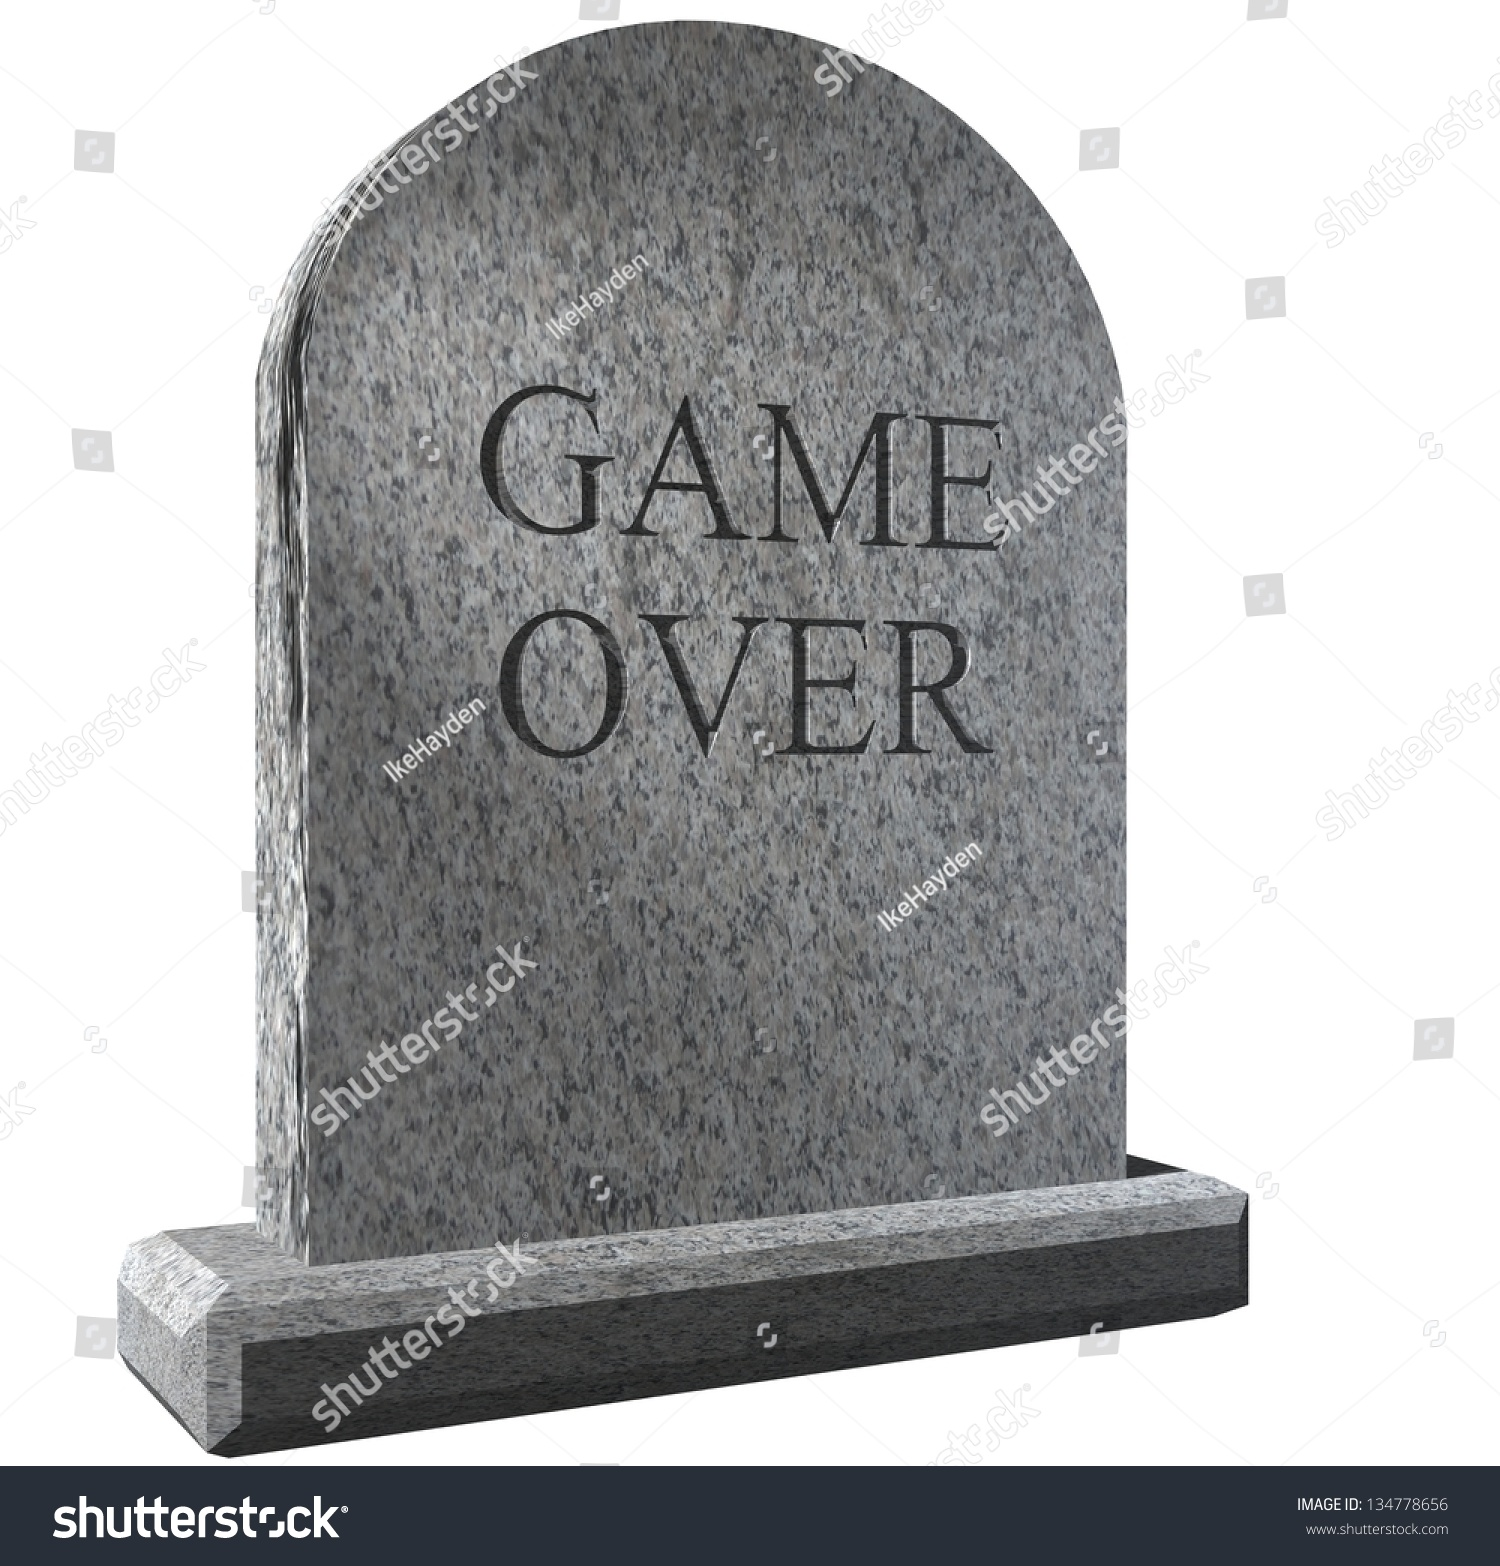 Image result for tombstone